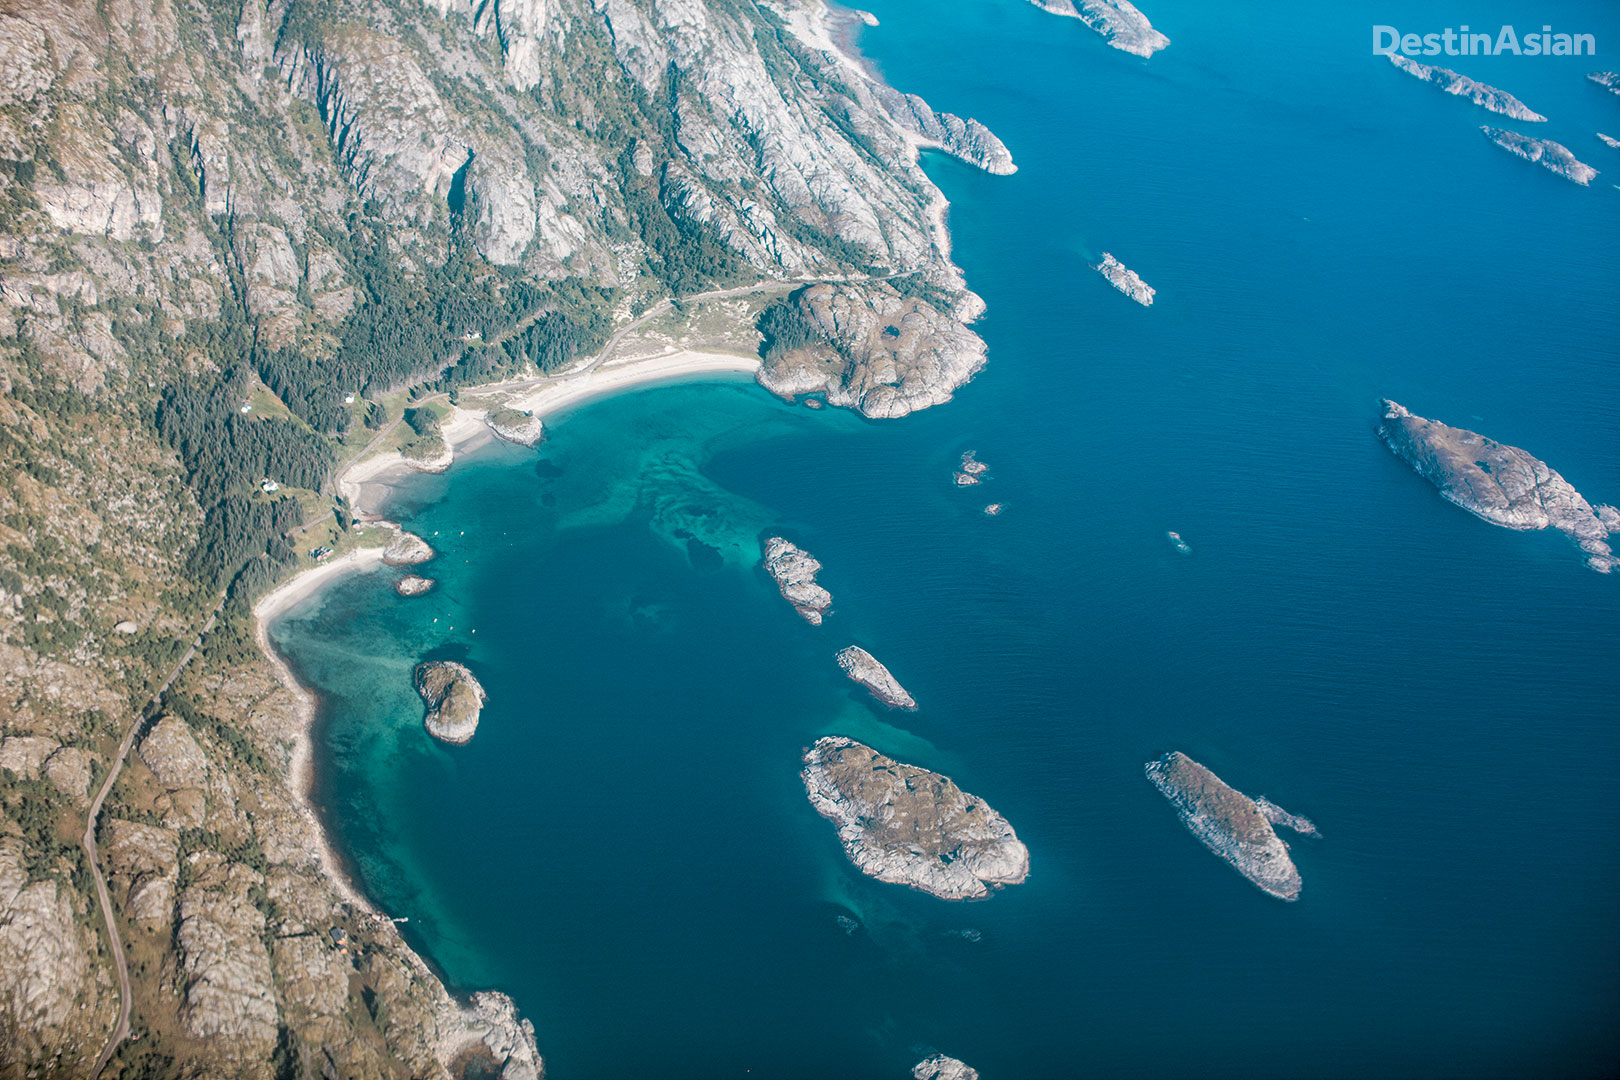 A bird's eye view of the south coast of Vestvågøya.